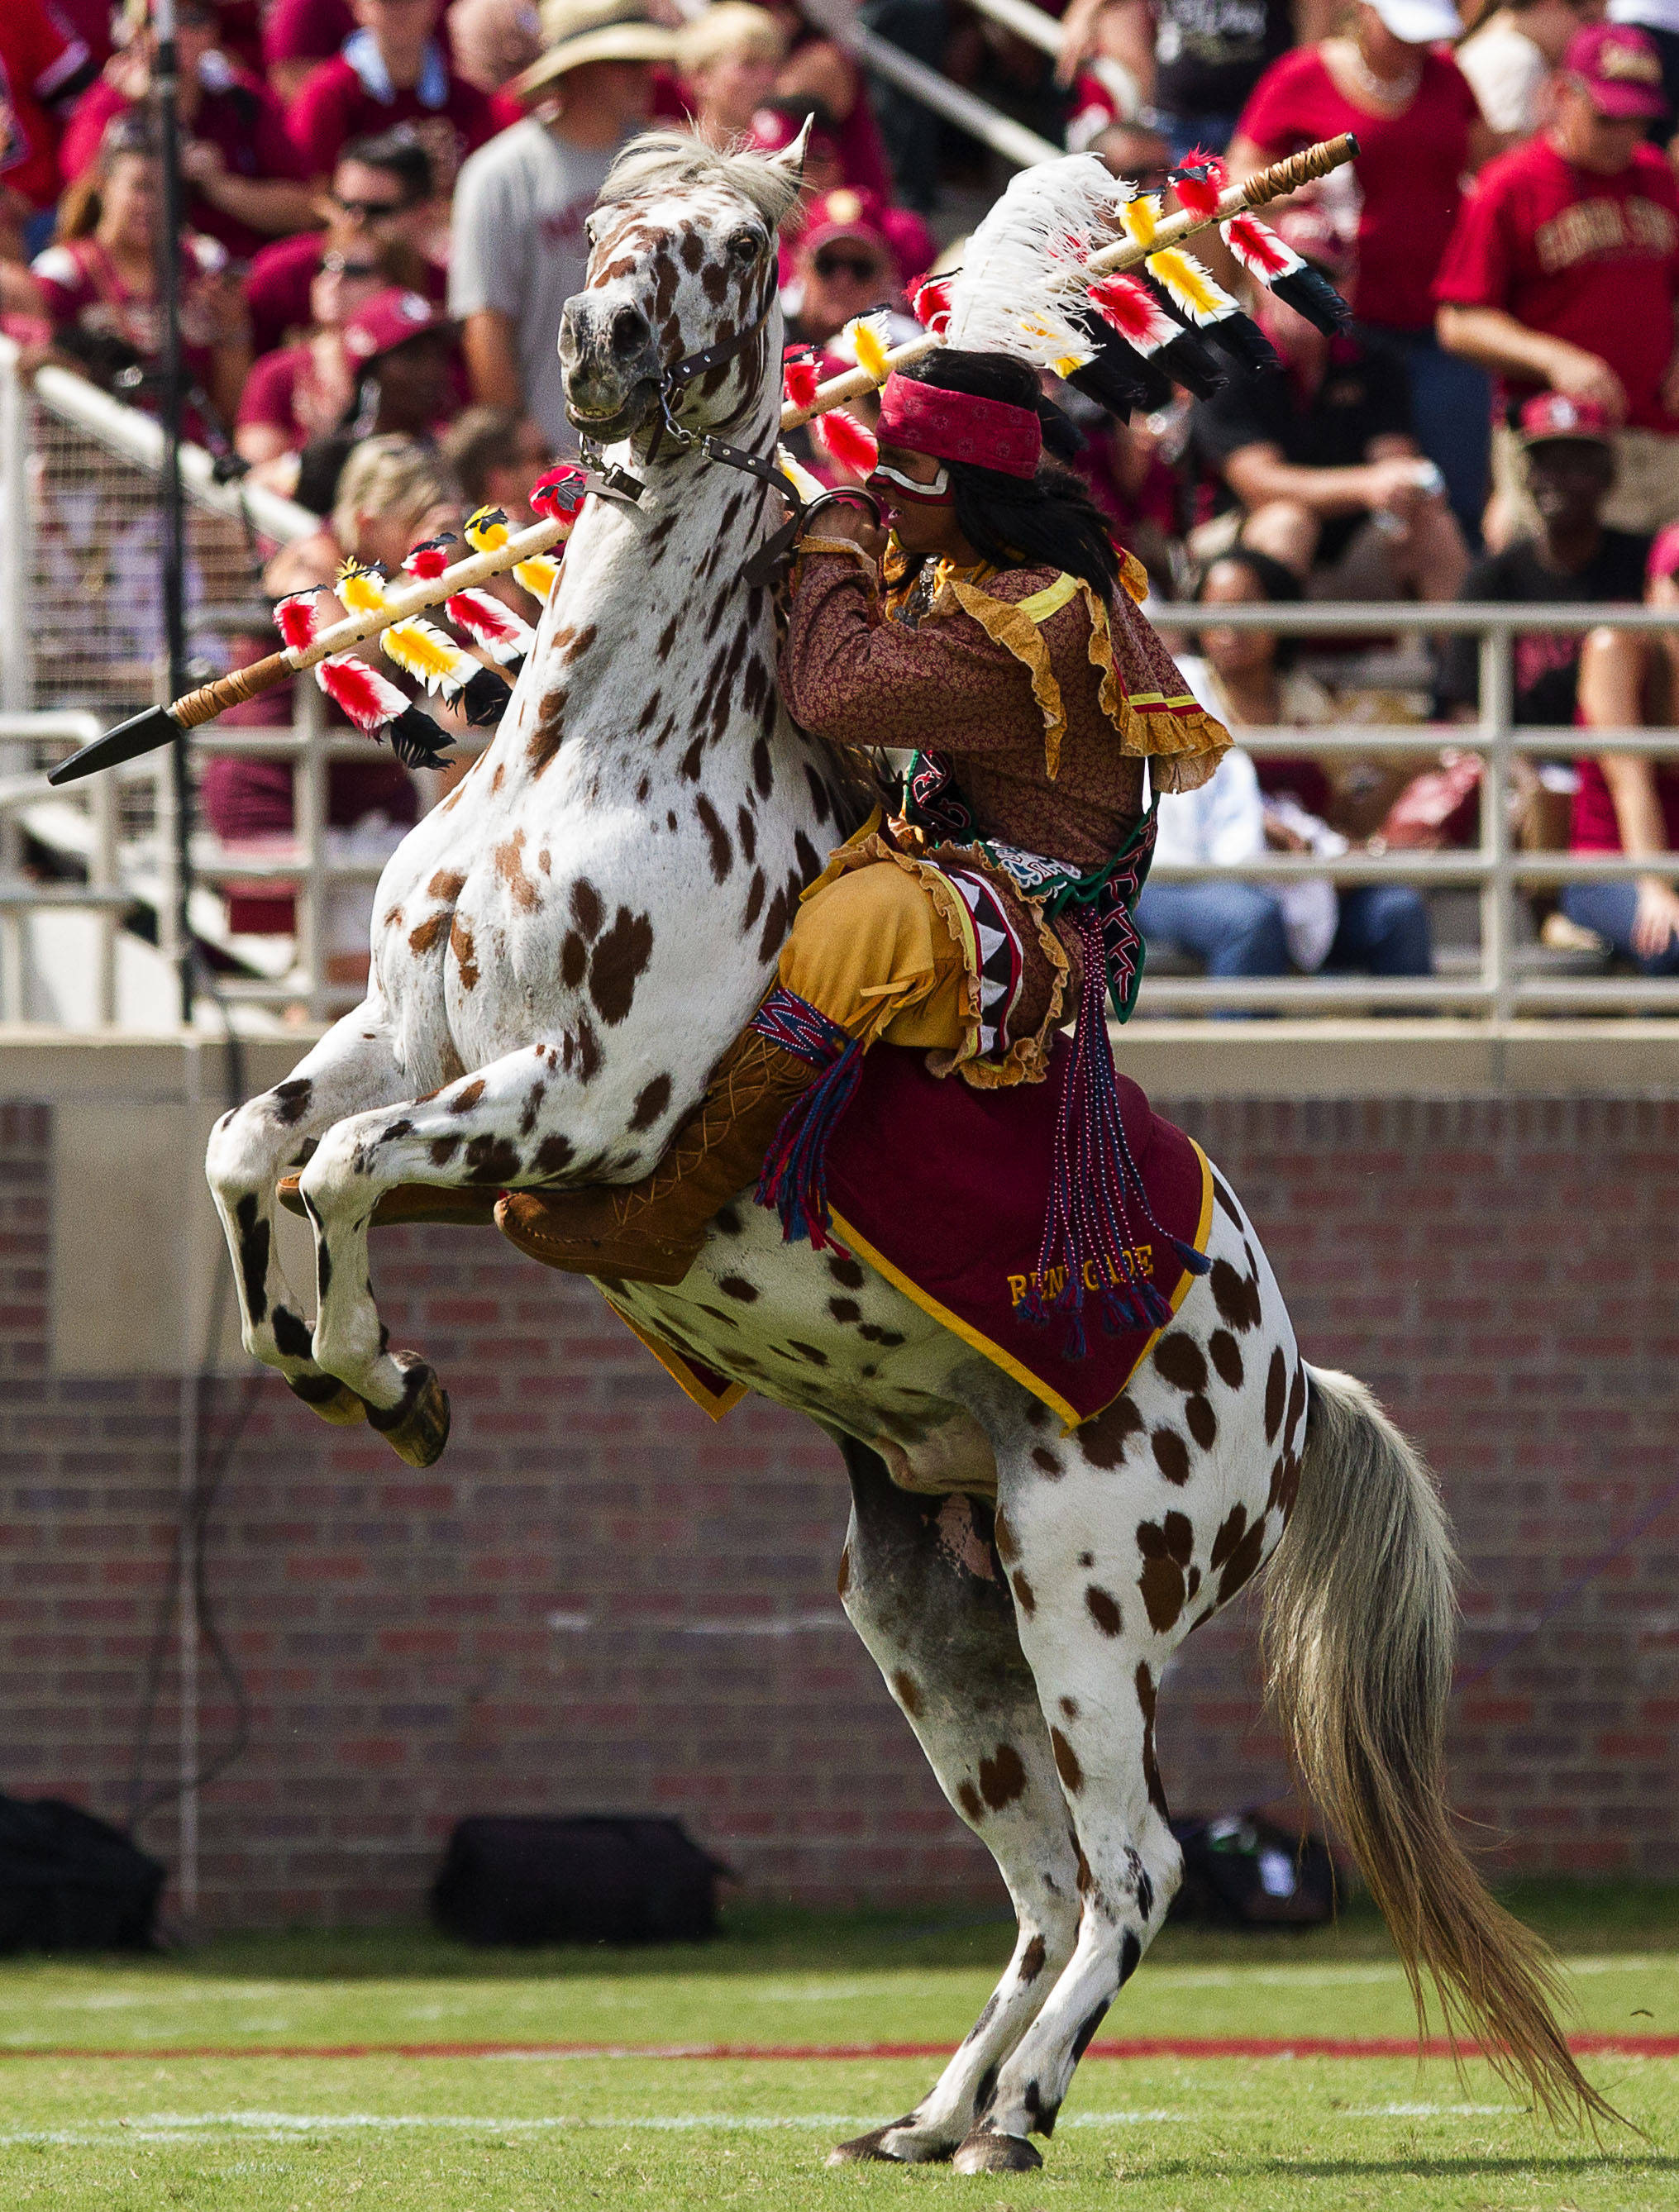 Chief Oceola raises the spear during FSU Football's 63-0 shutout of Maryland on Saturday, October 5, 2013 in Tallahassee, Fla.